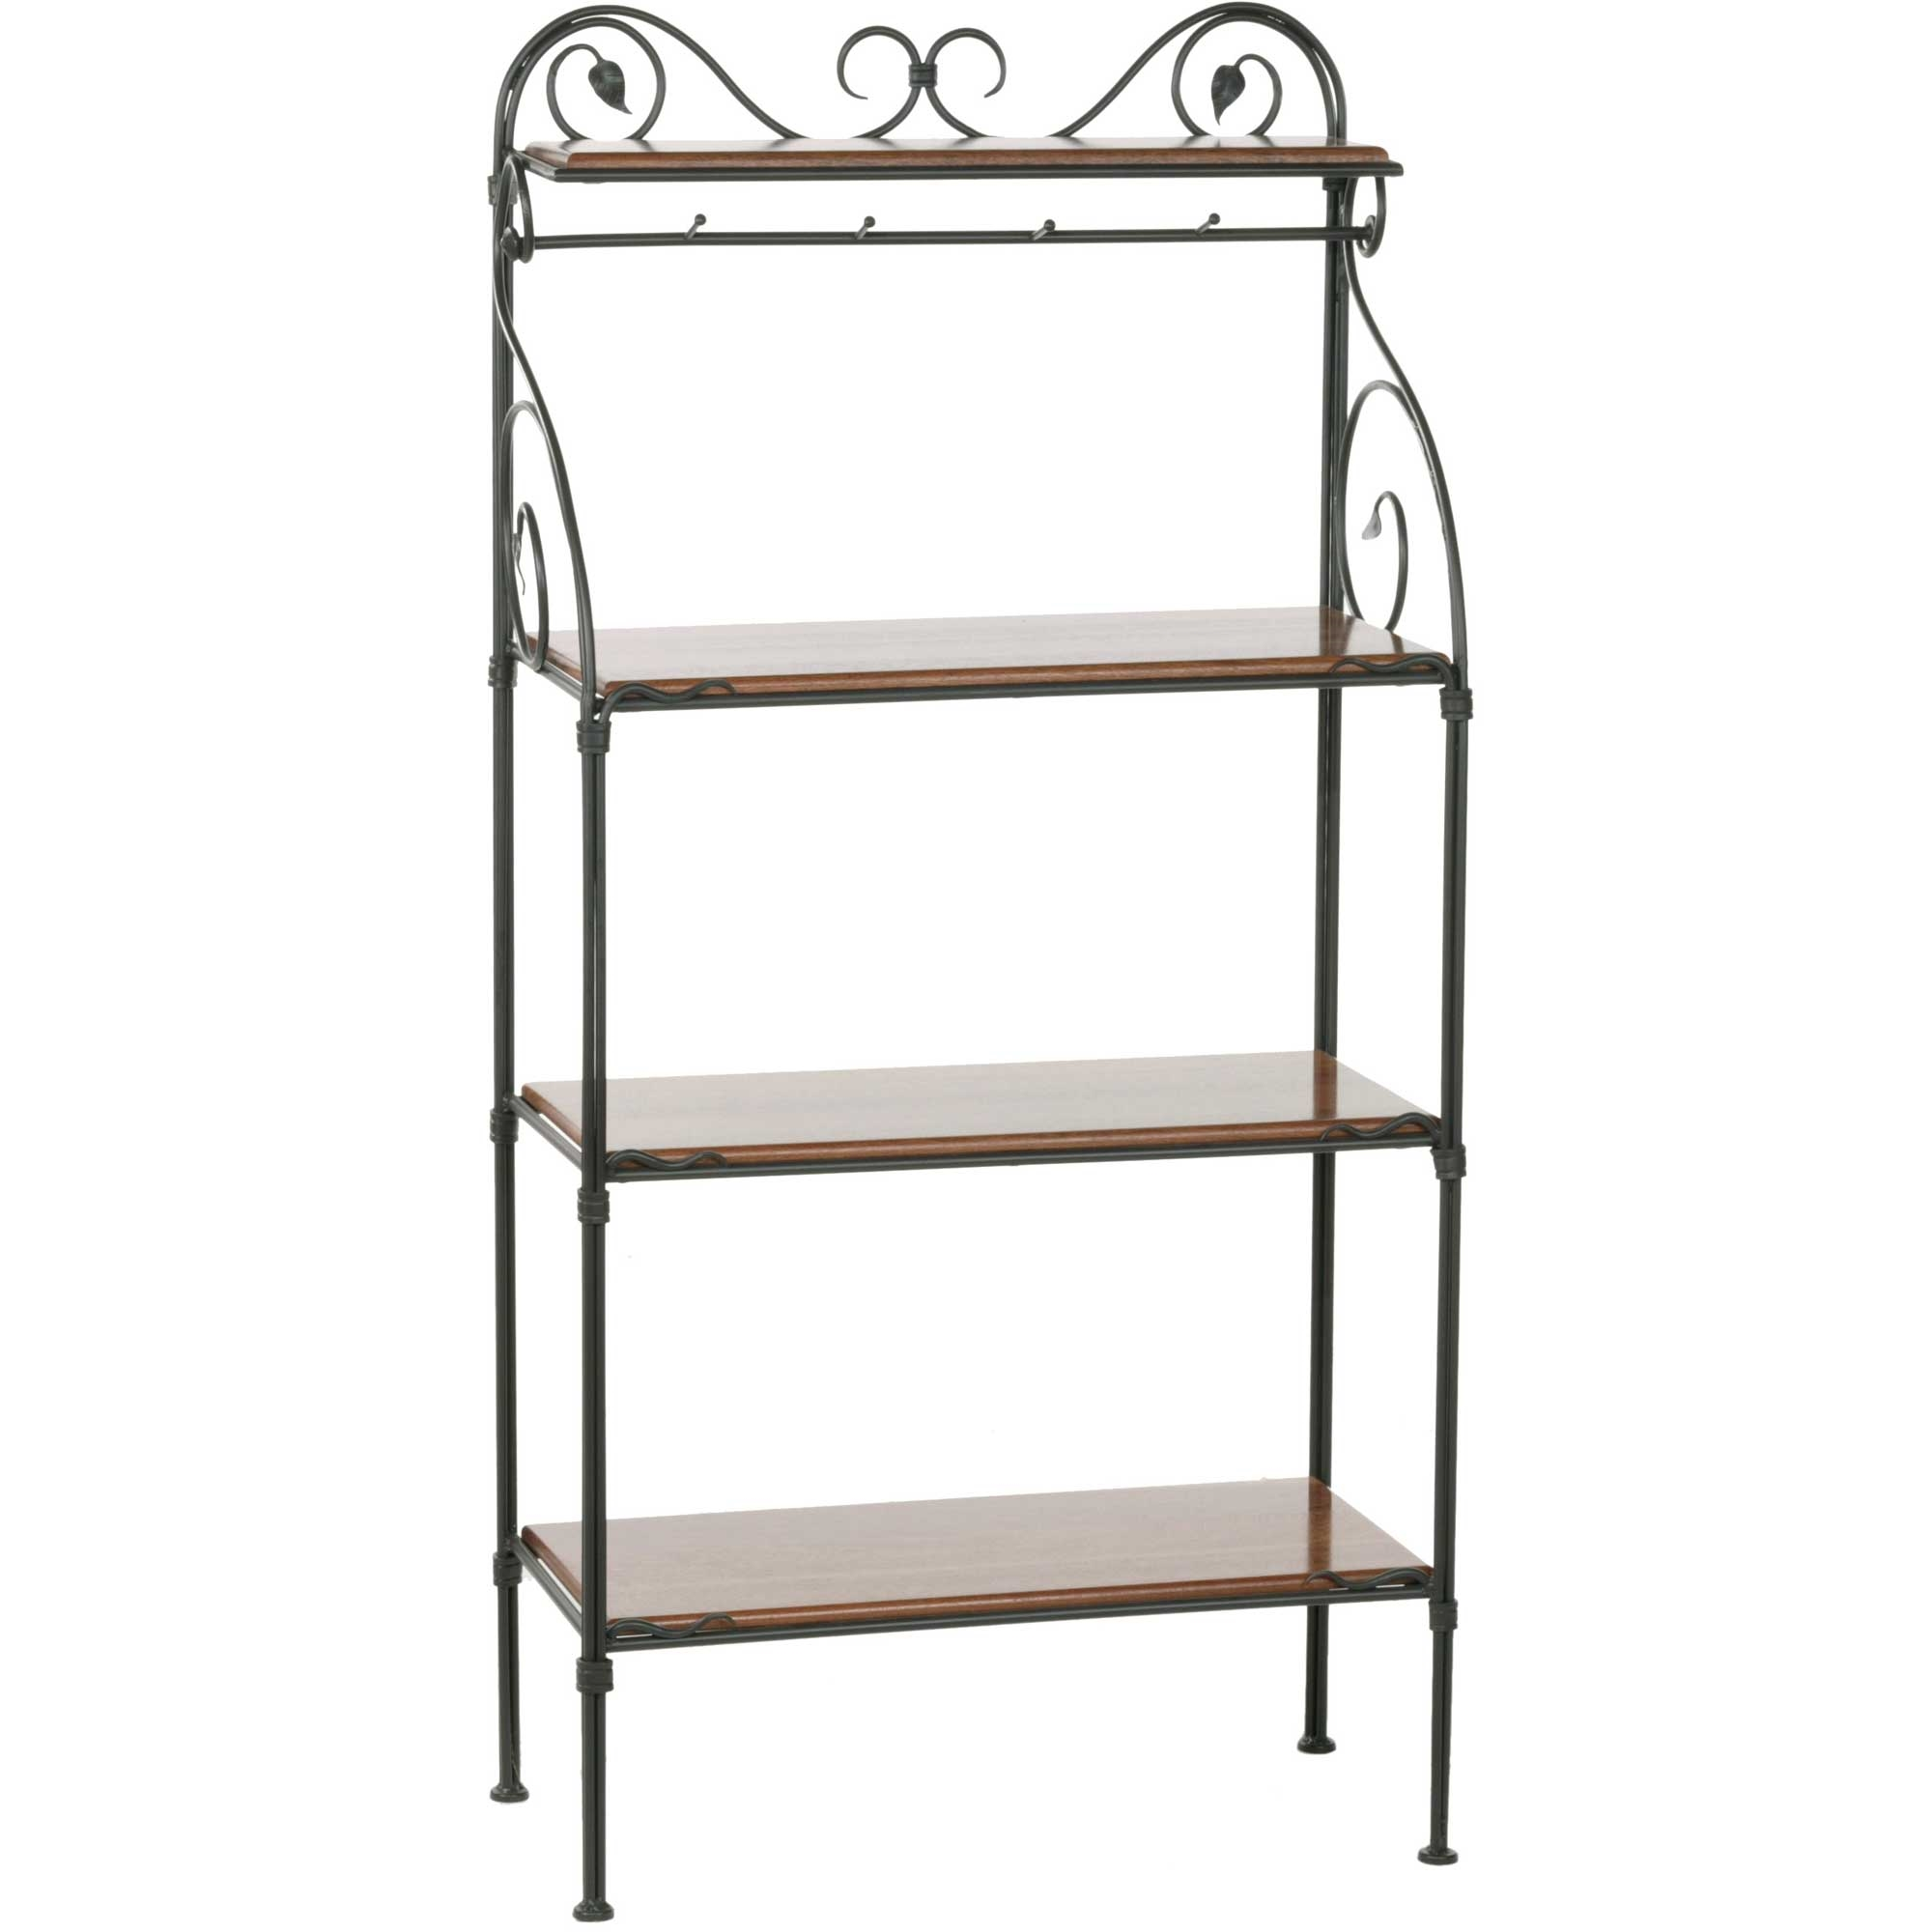 leaf 4 tier wrought iron bakers rack shelf finish options rh timelesswroughtiron com wrought iron bakers rack with glass shelves wrought iron bakers rack with glass shelves